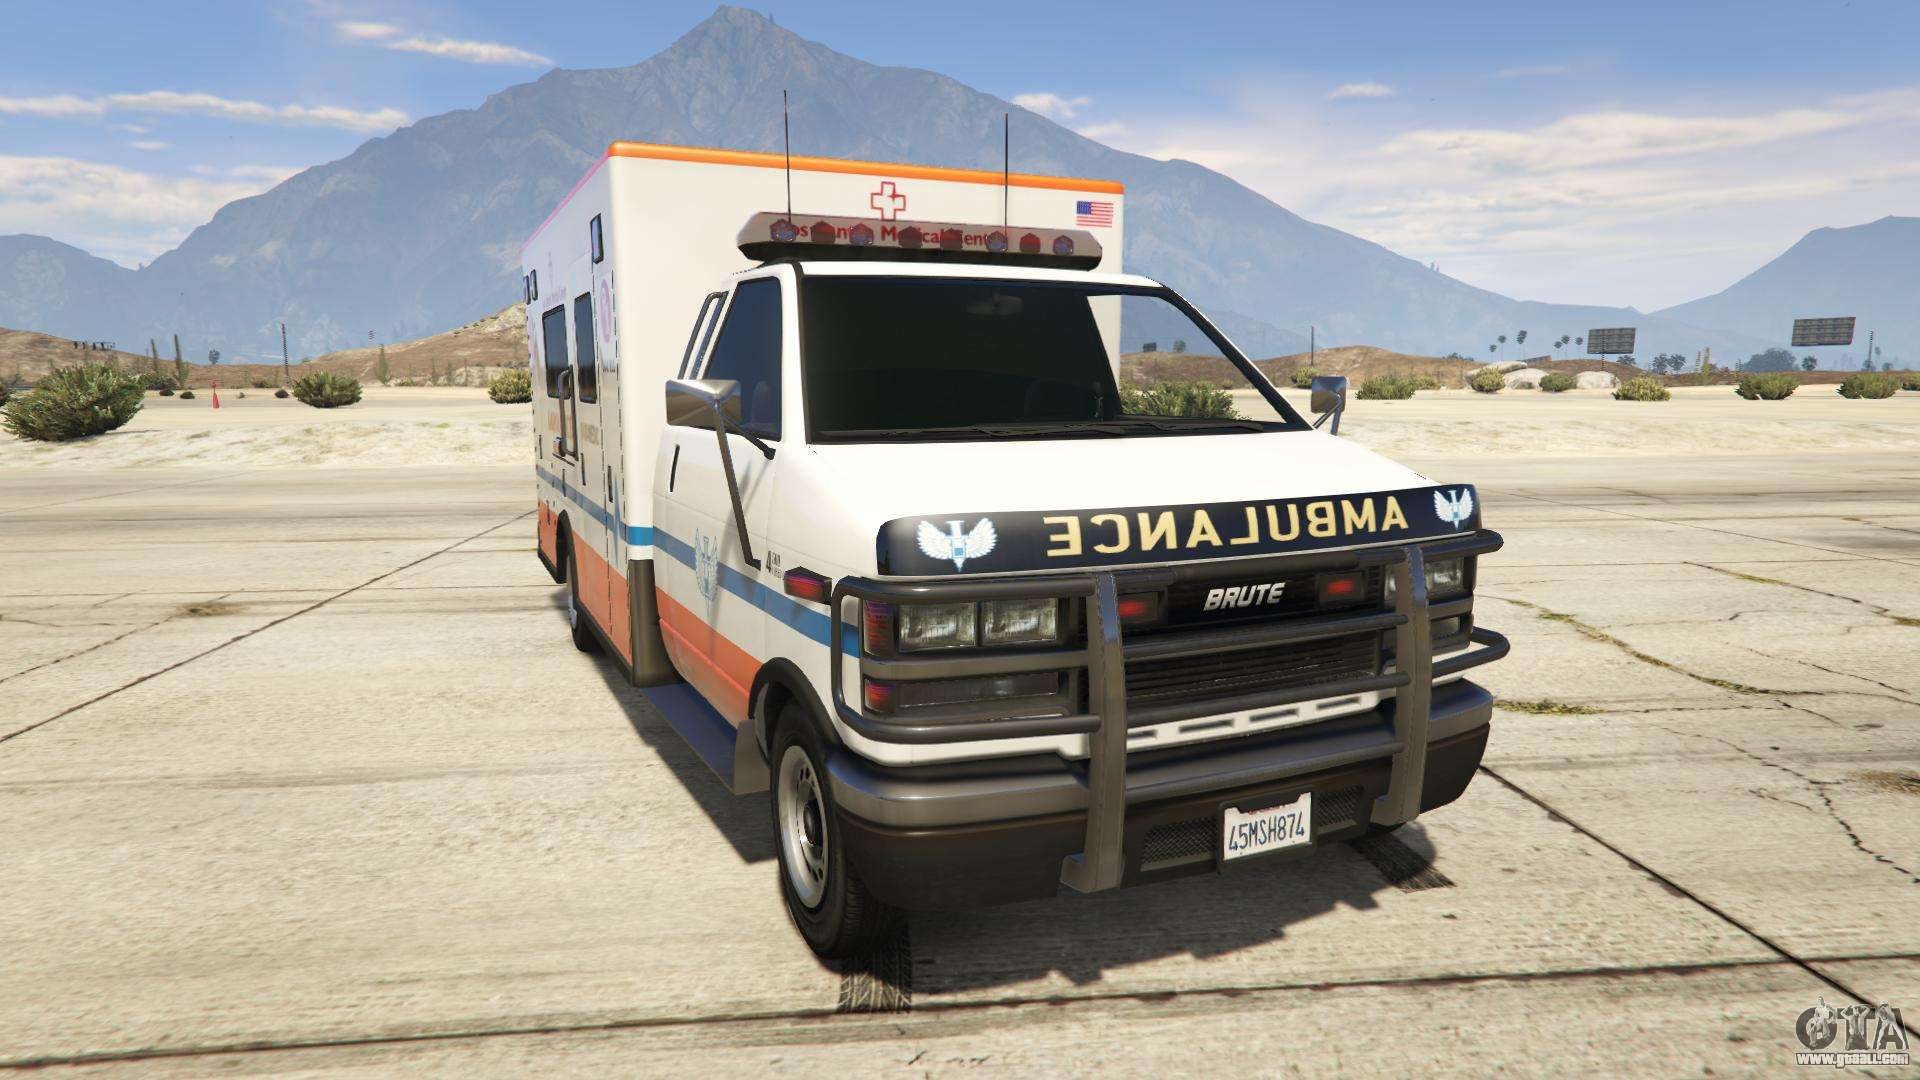 Emergency vehicles GTA 5 - a list of all emergency vehicles from GTA 5